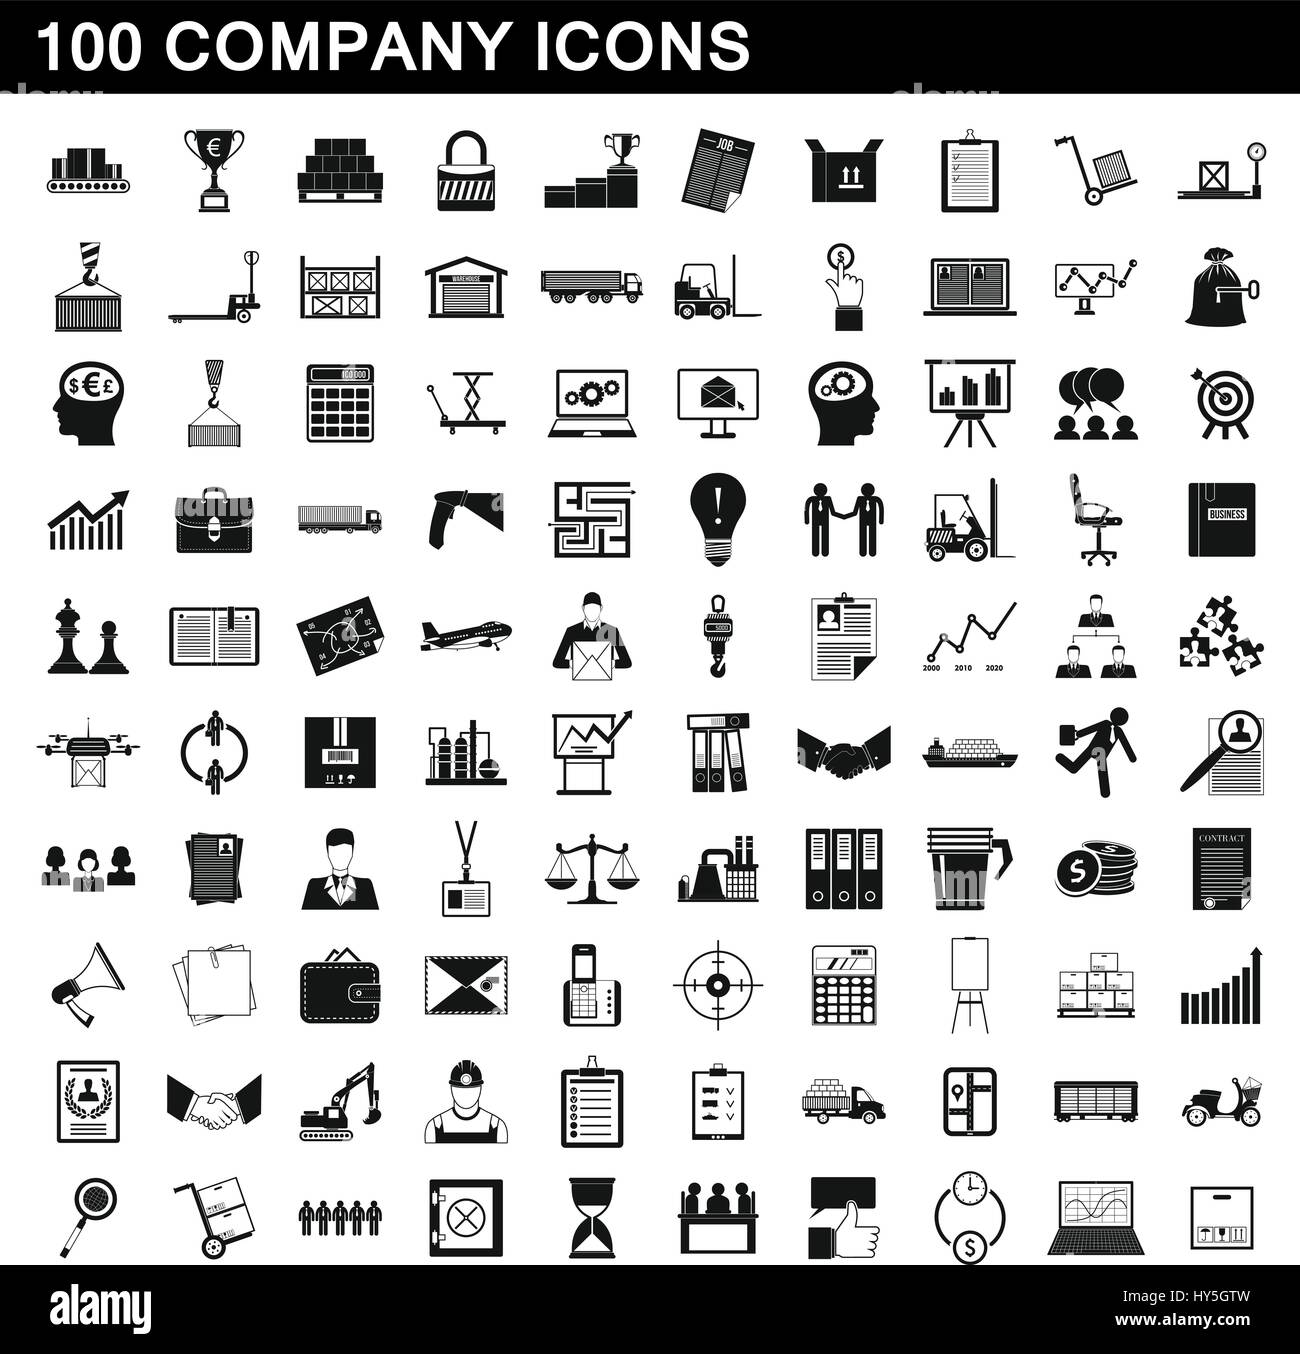 100 company icons set, simple style Stock Vector